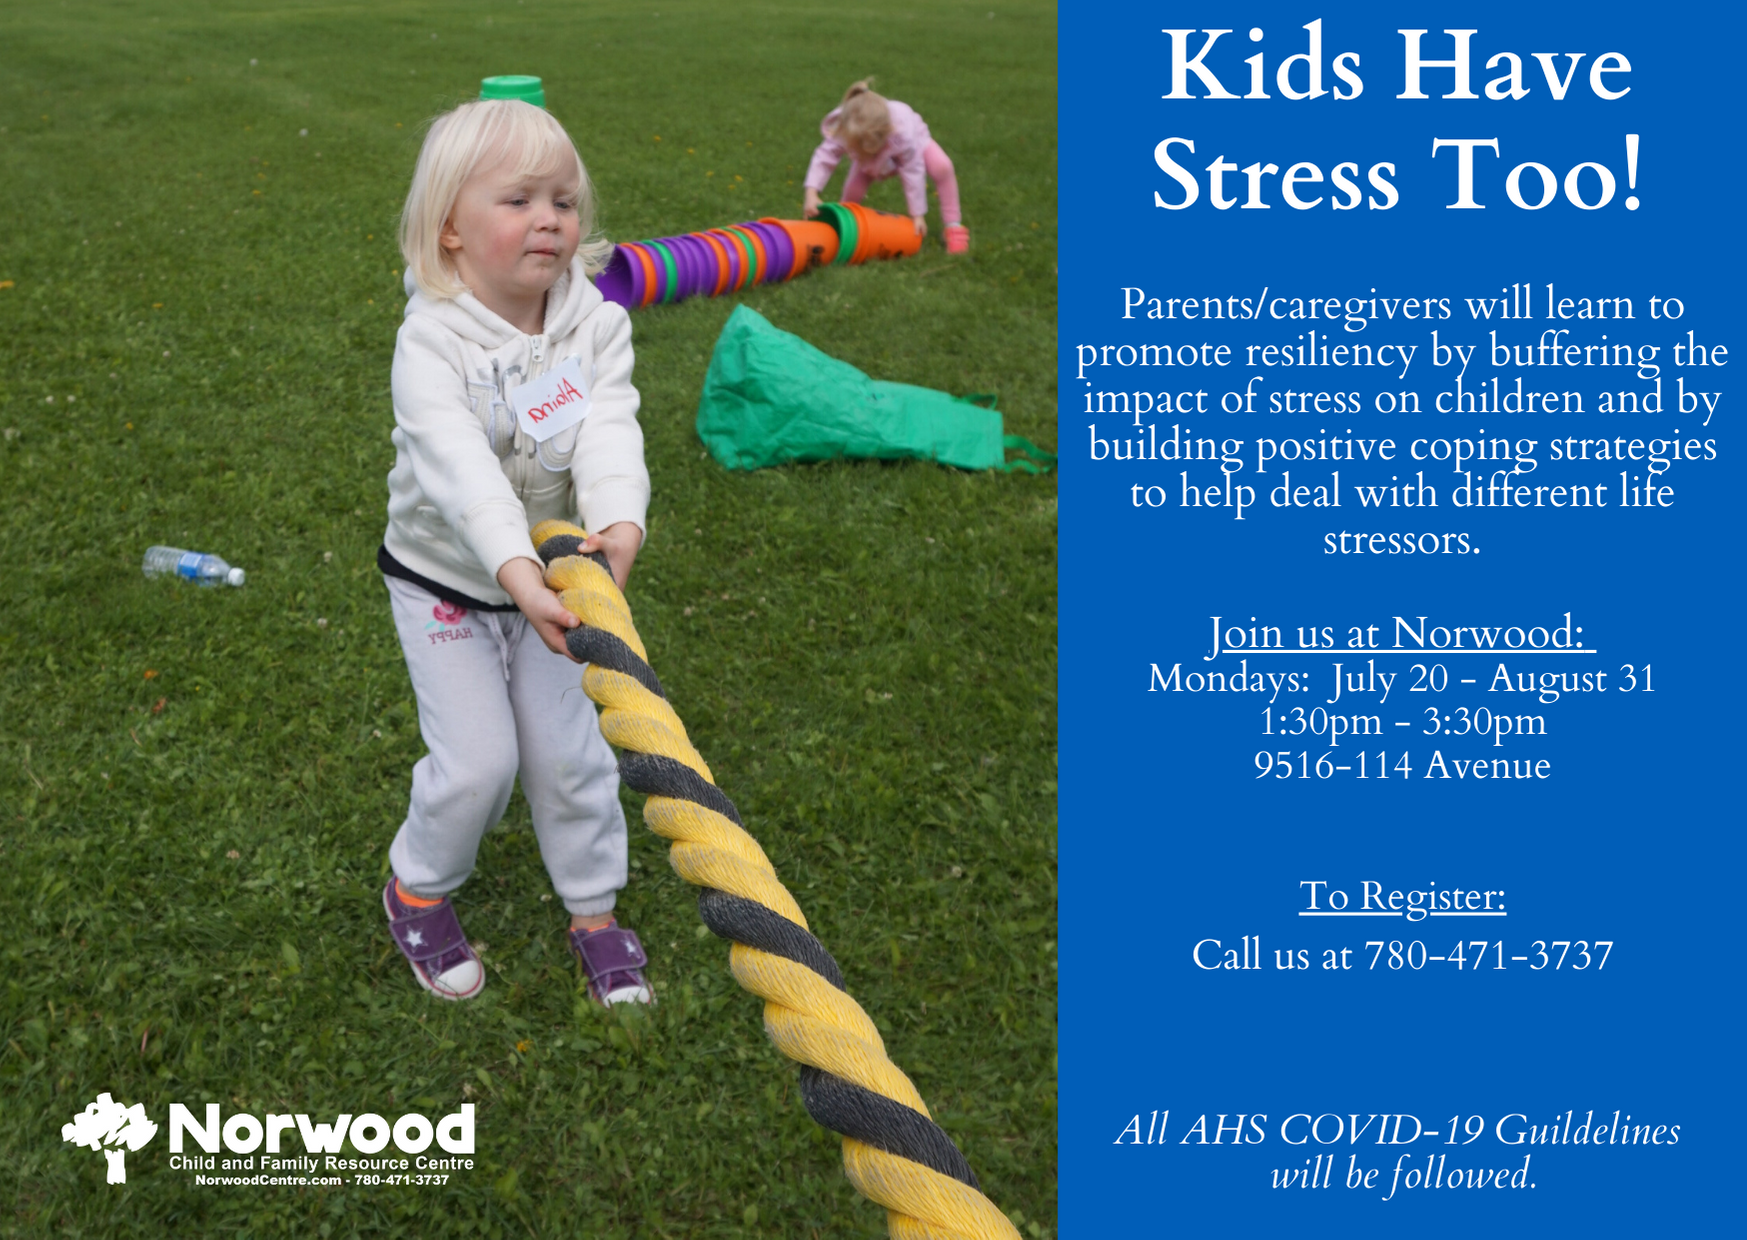 Kids Have Stress Too!